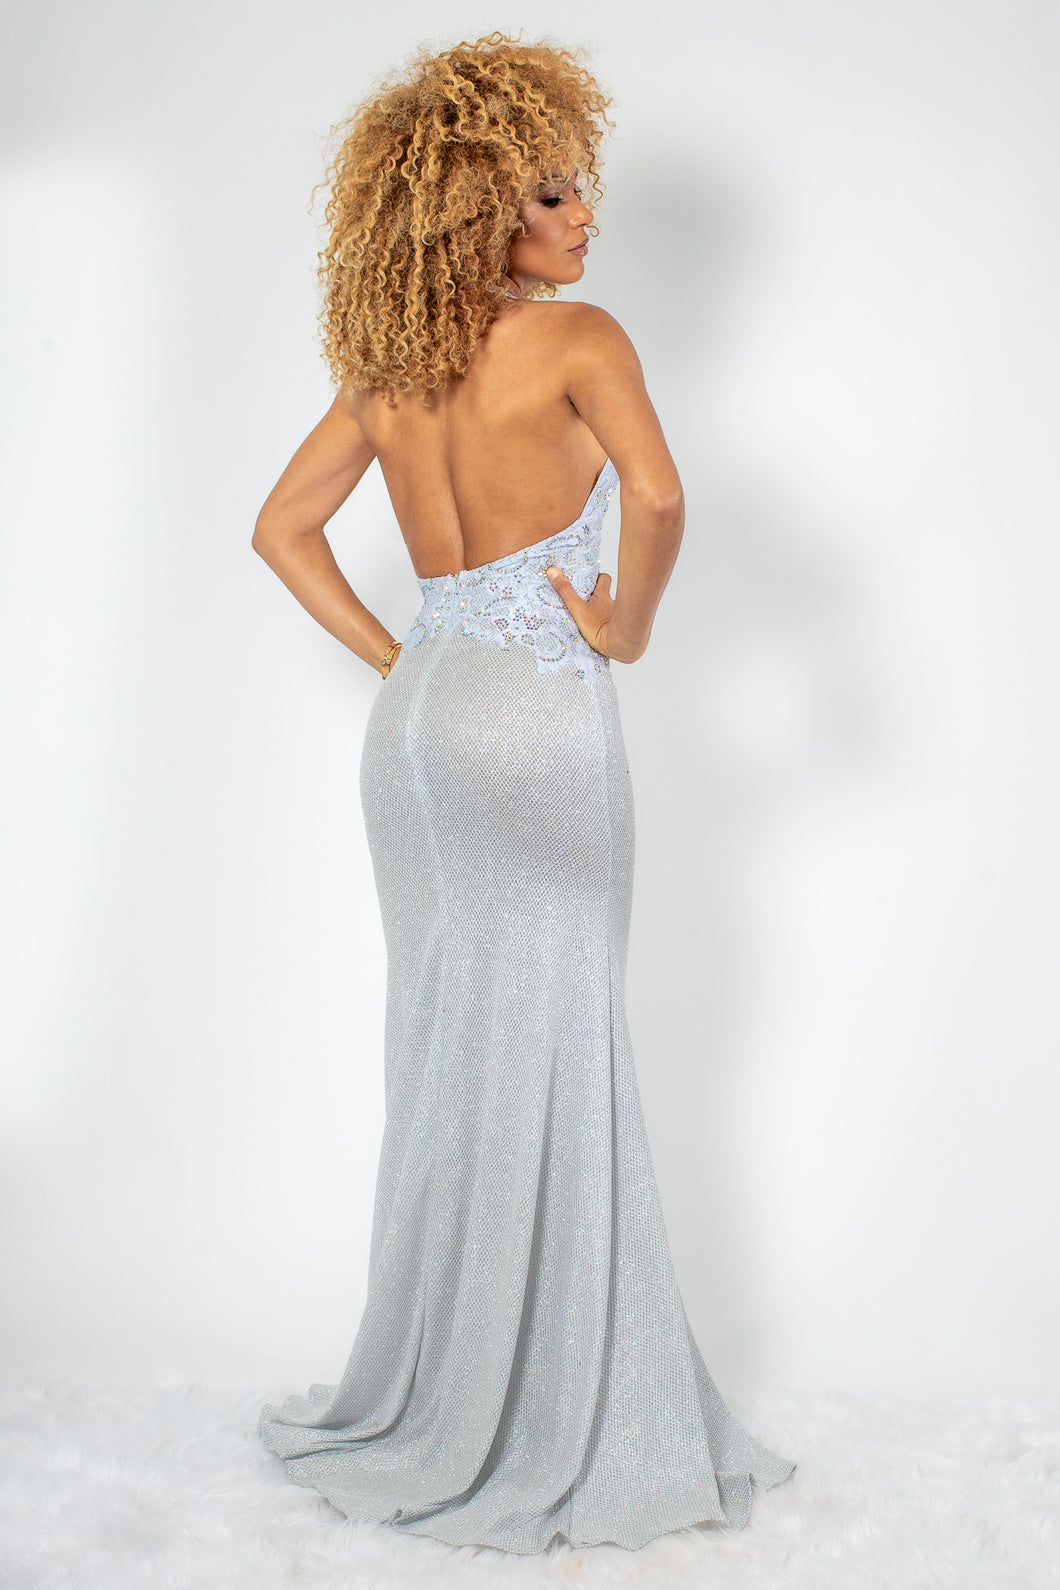 Lola Metallic Silver with White Crystal Long Dress - BACCIO Couture